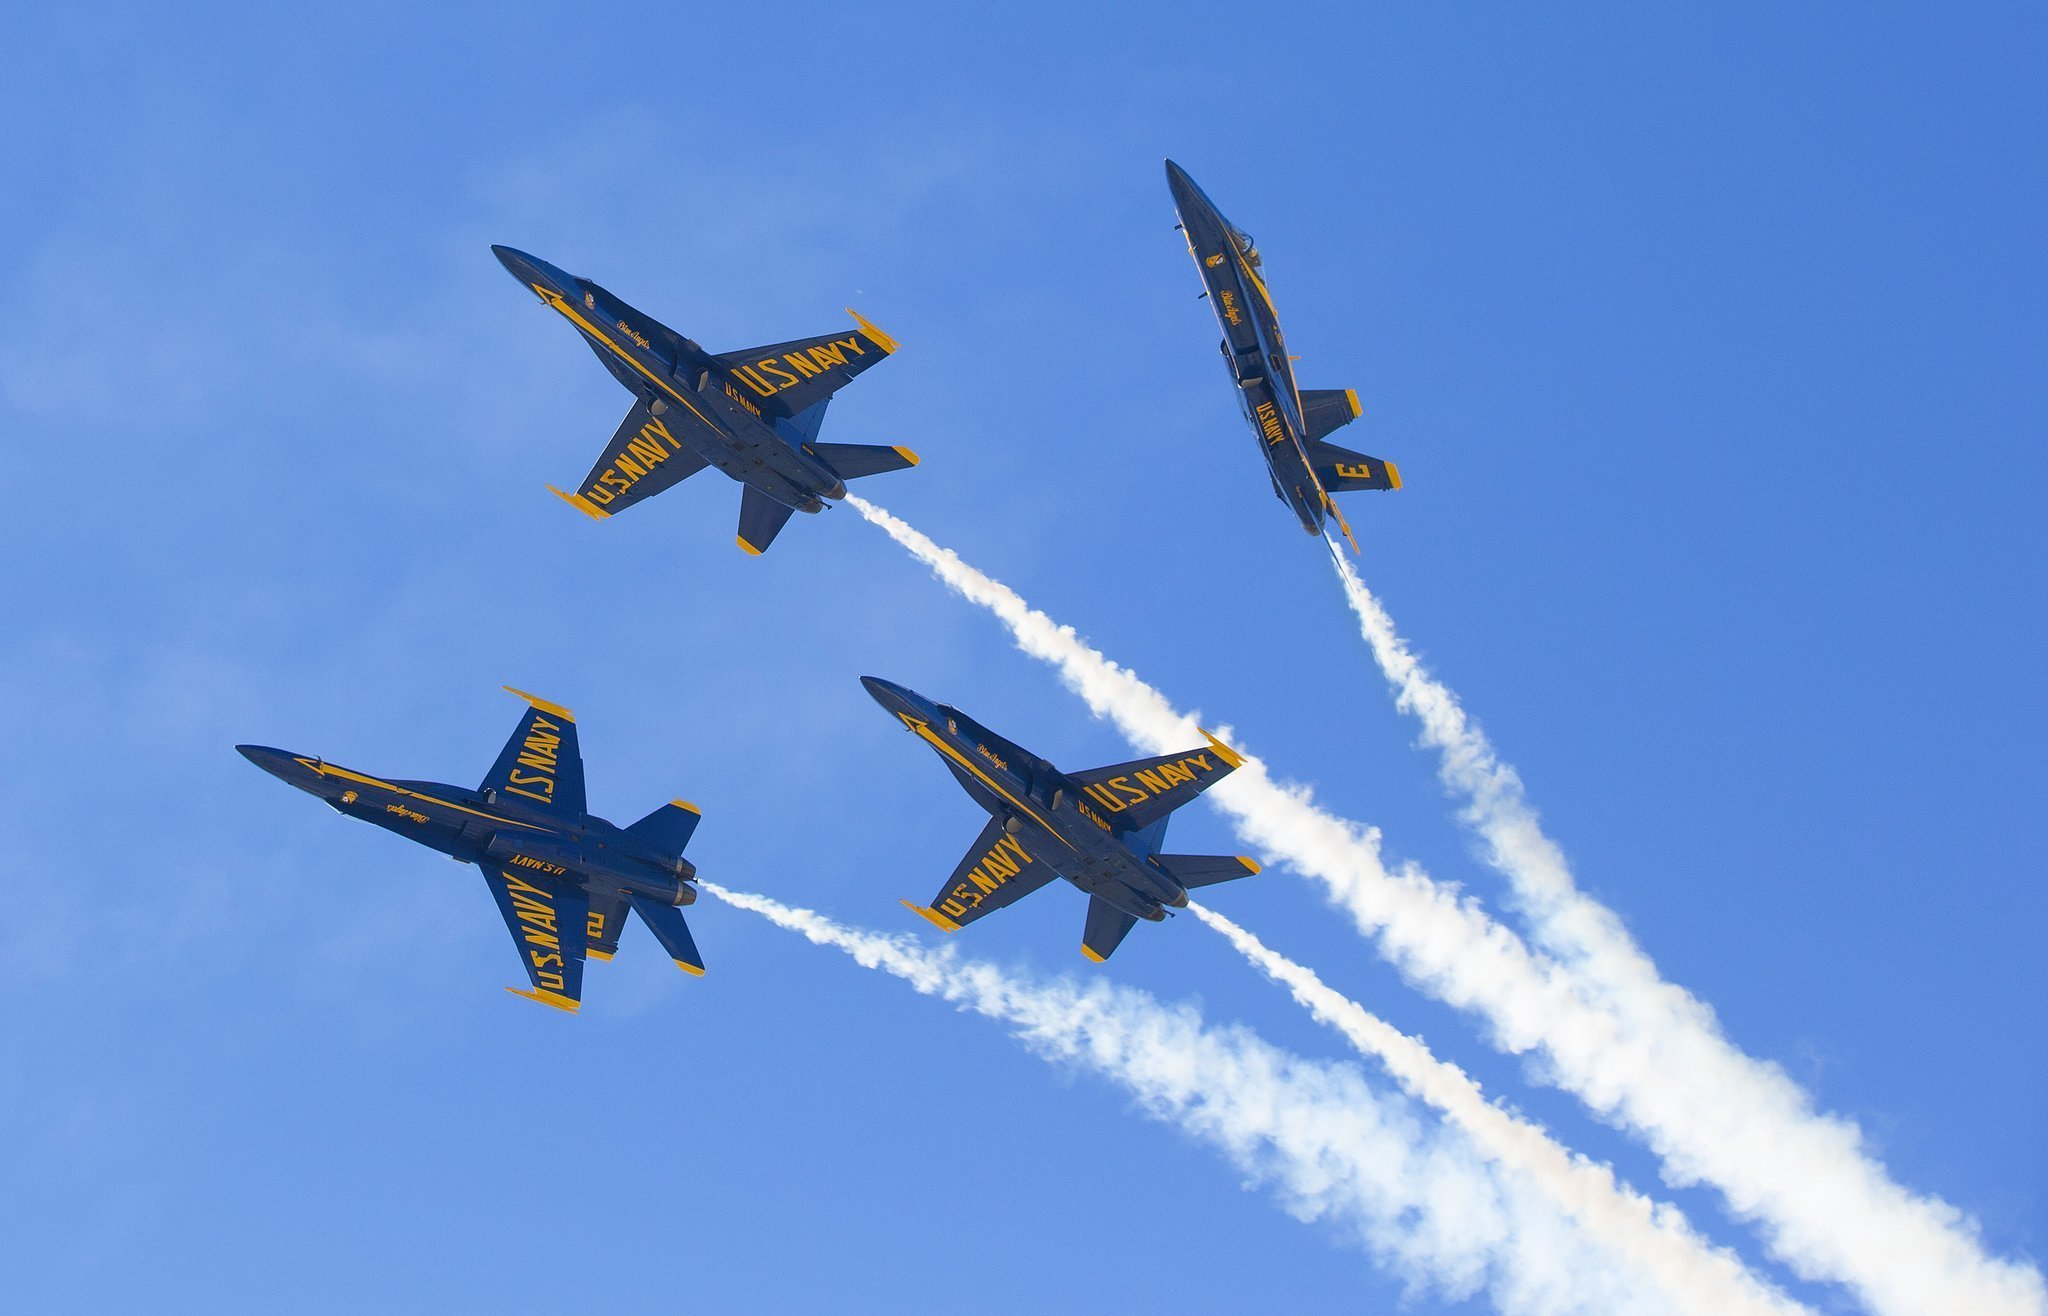 Miramar air show adopts tighter security the san diego for Airplane show